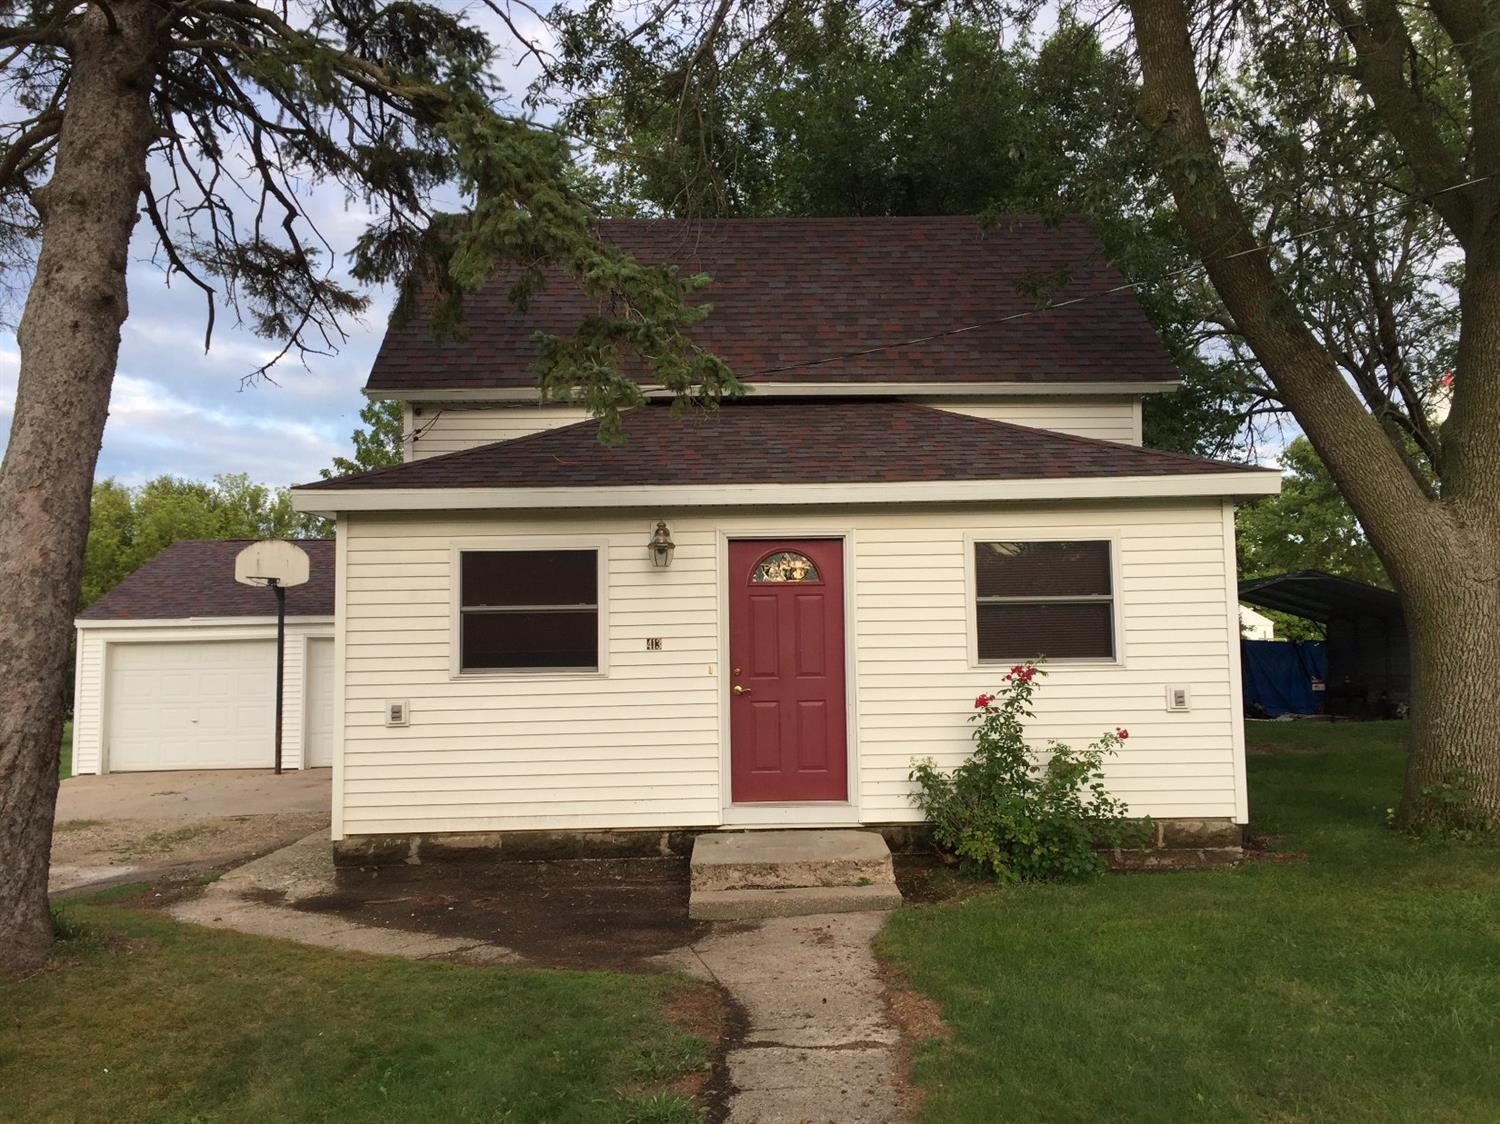 413 Church St, Linn Grove, IA 51033